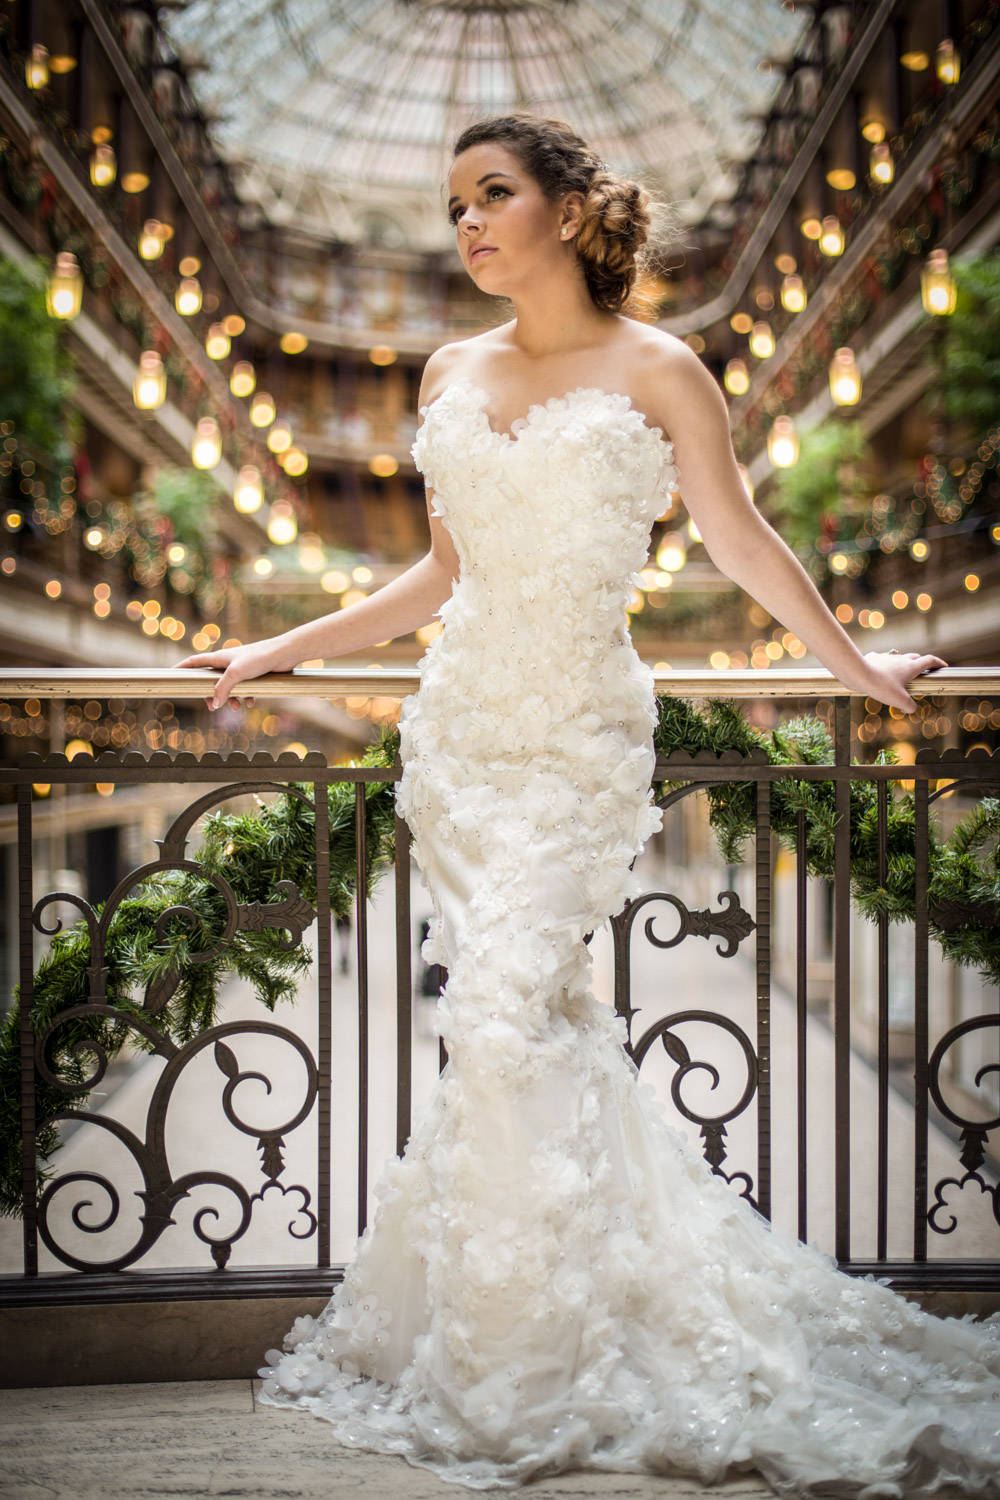 Bridal & Prom Gown Alterations & Custom Design in Lake County, Ohio